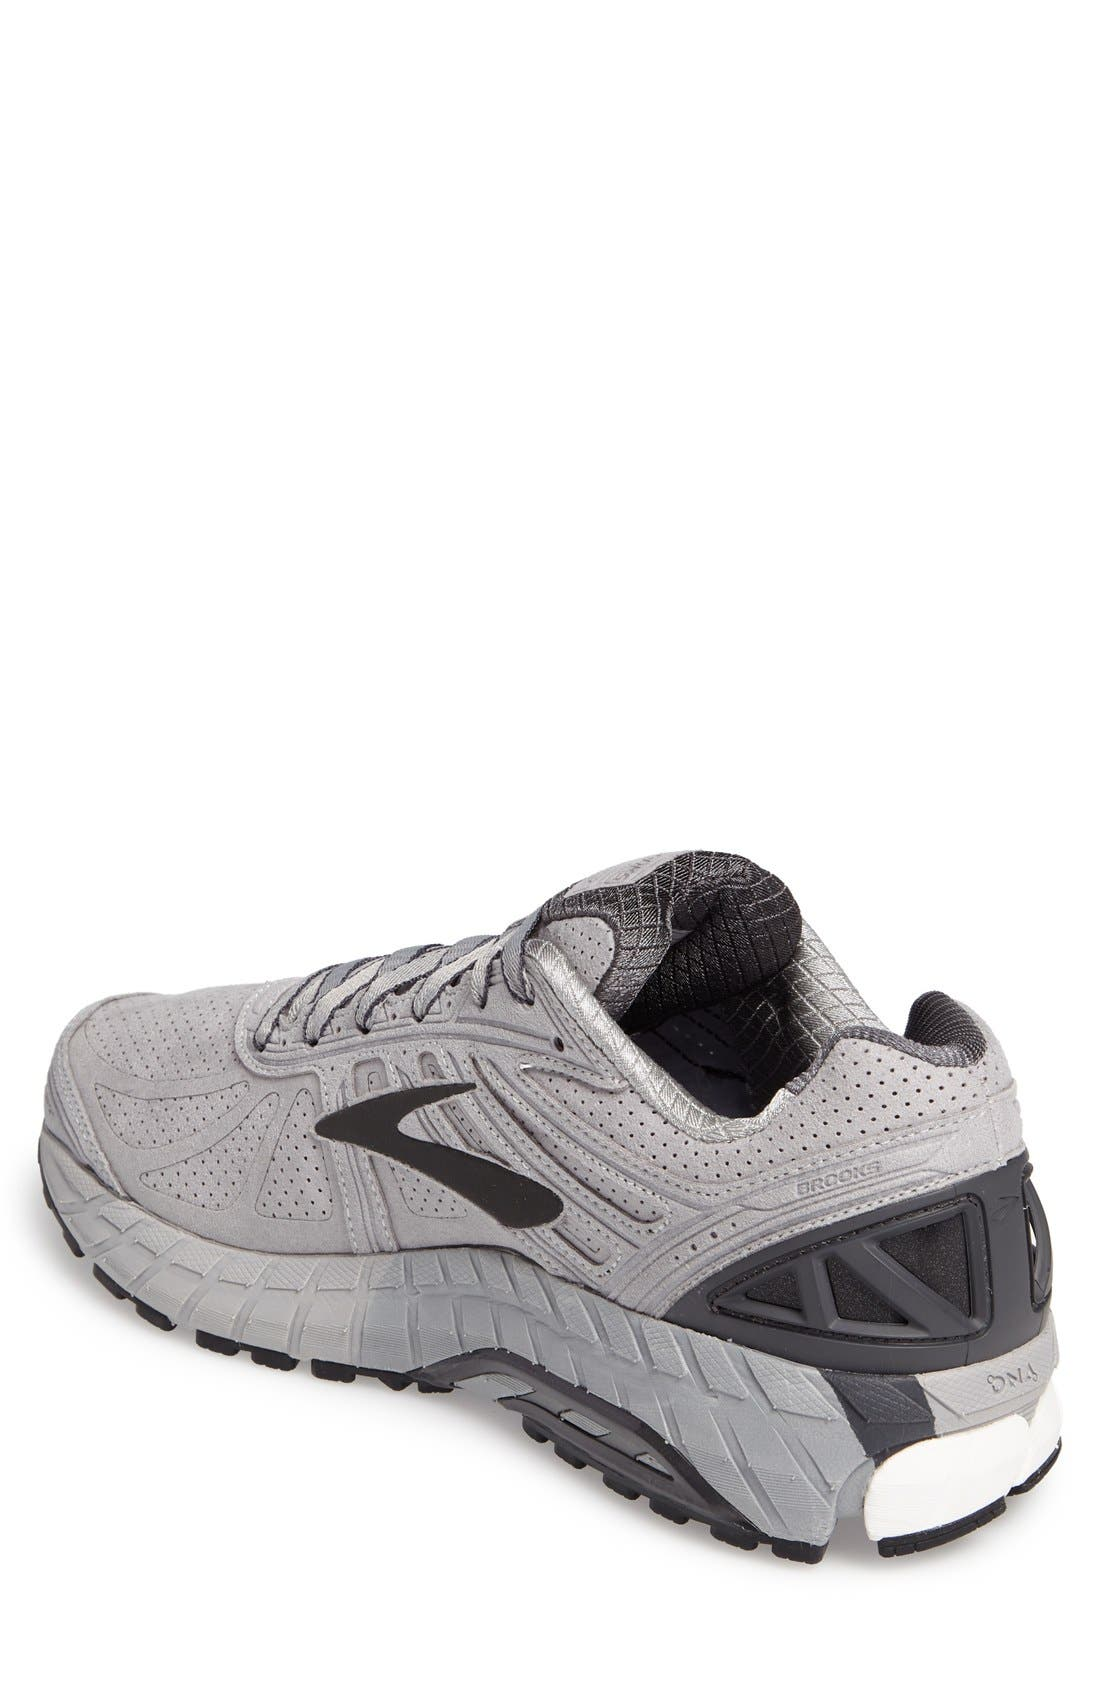 Beast 16 LE Running Shoe,                             Alternate thumbnail 2, color,                             Silver/ Anthracite